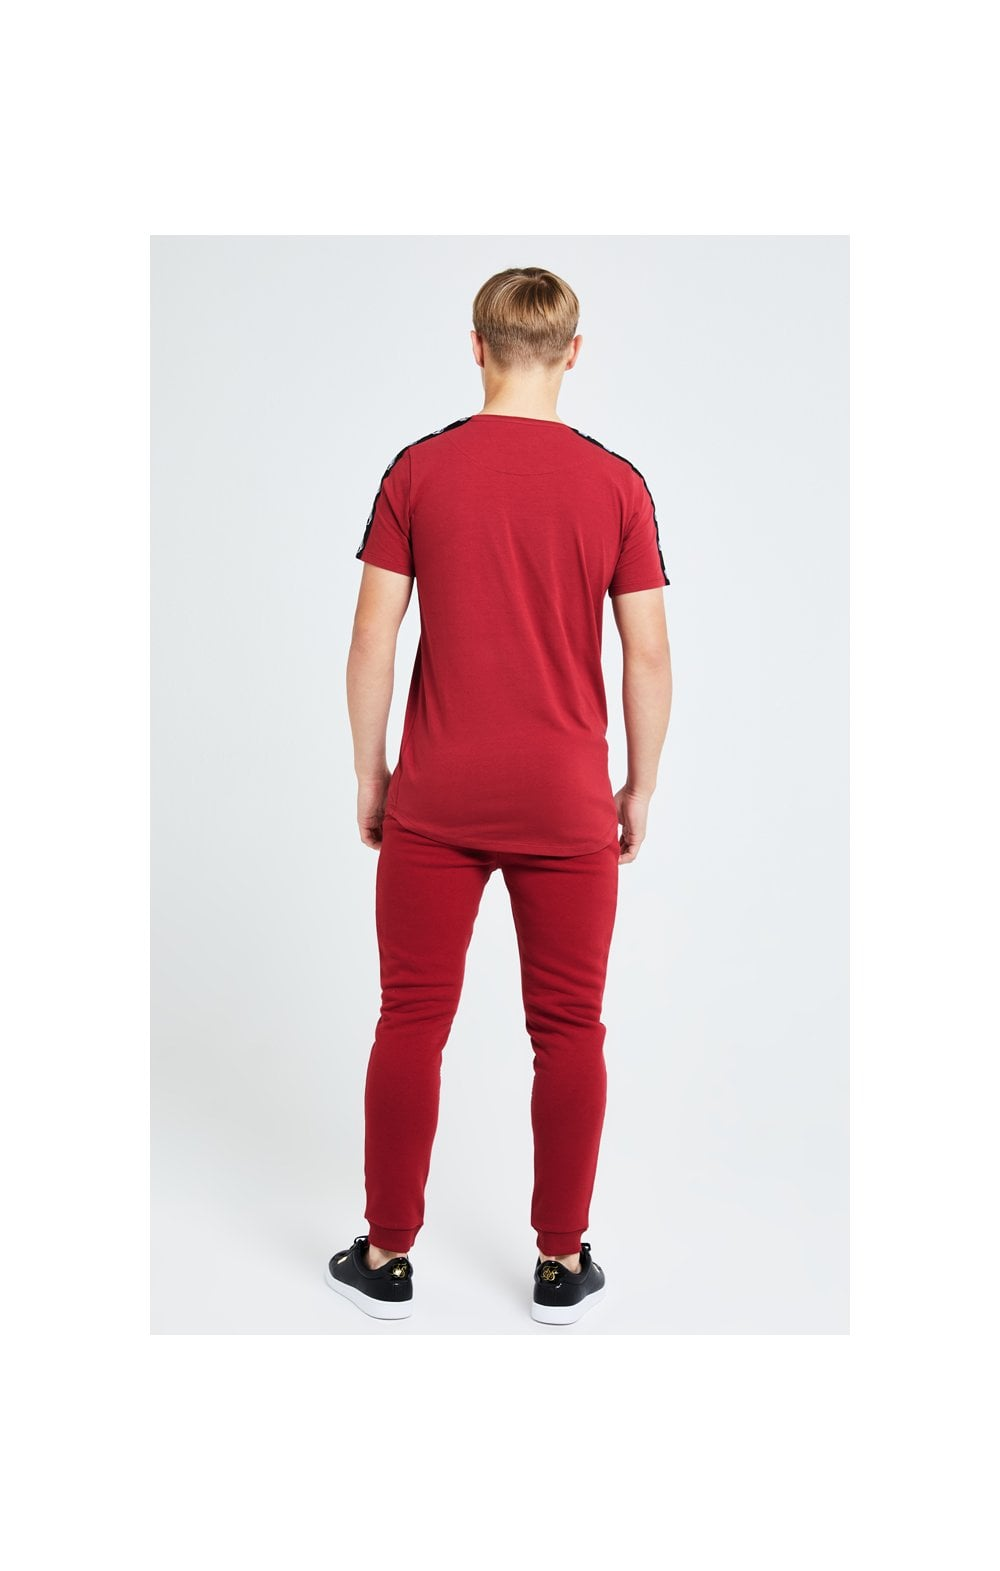 Illusive London Gravity Tape Tee - Red (6)